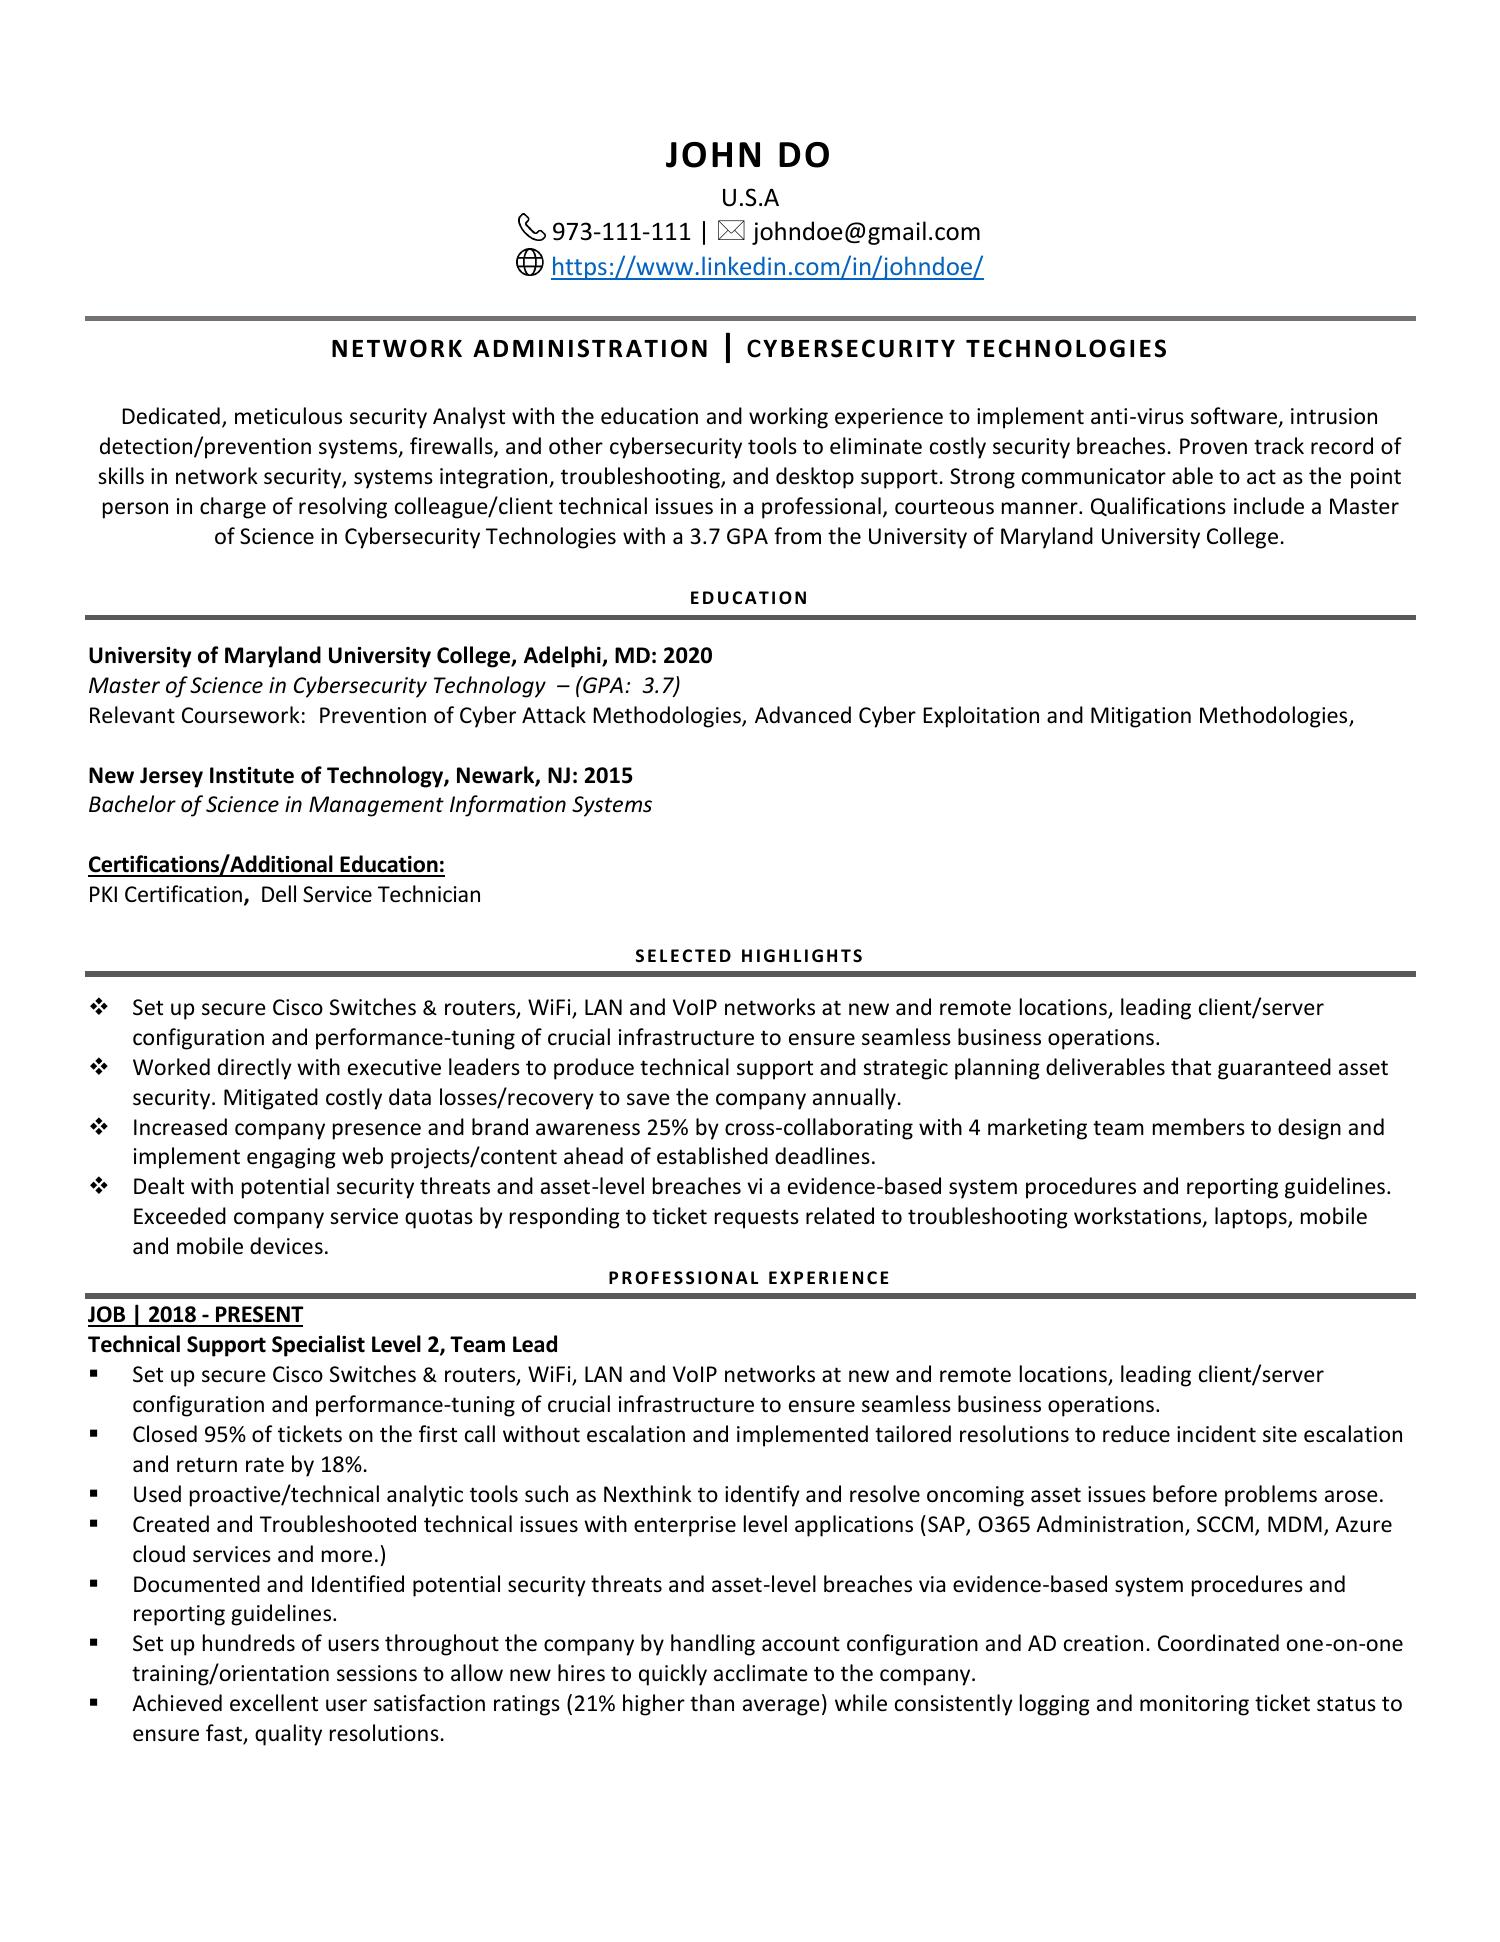 resume reddit docdroid cyber security pdf sample entry level paralegal objective for any Resume Cyber Security Resume Reddit